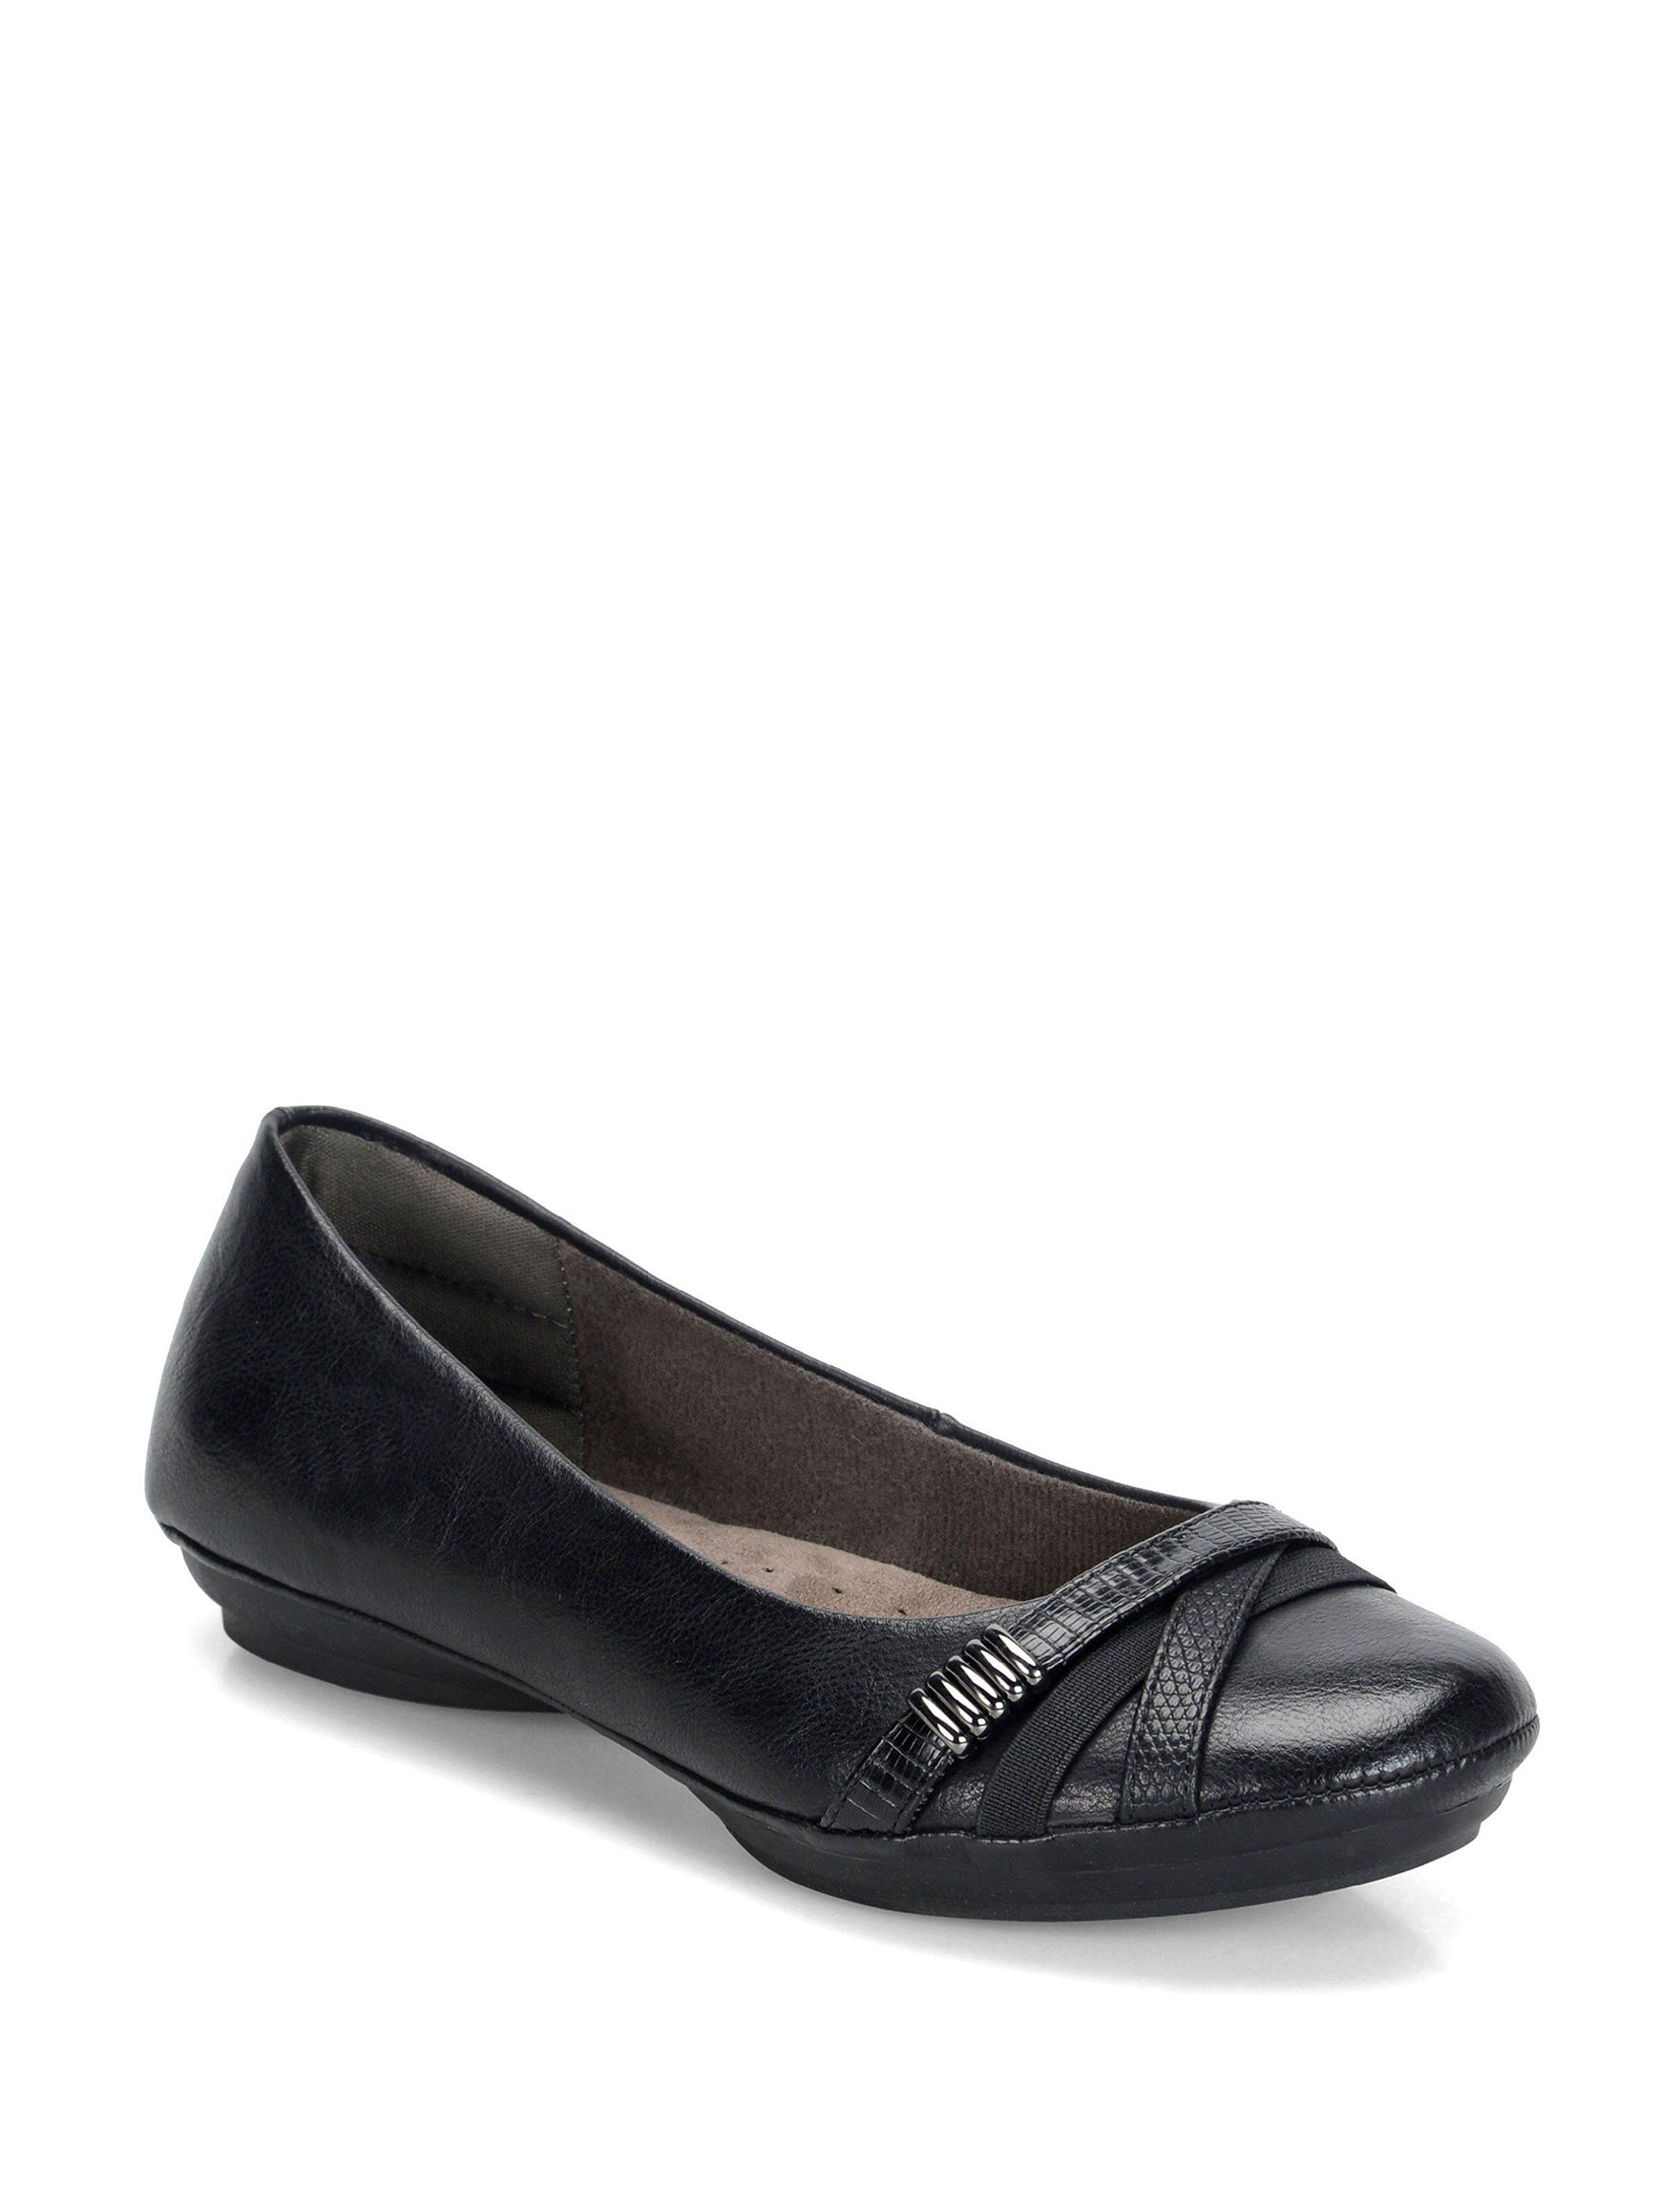 Eurosoft Black Comfort Shoes